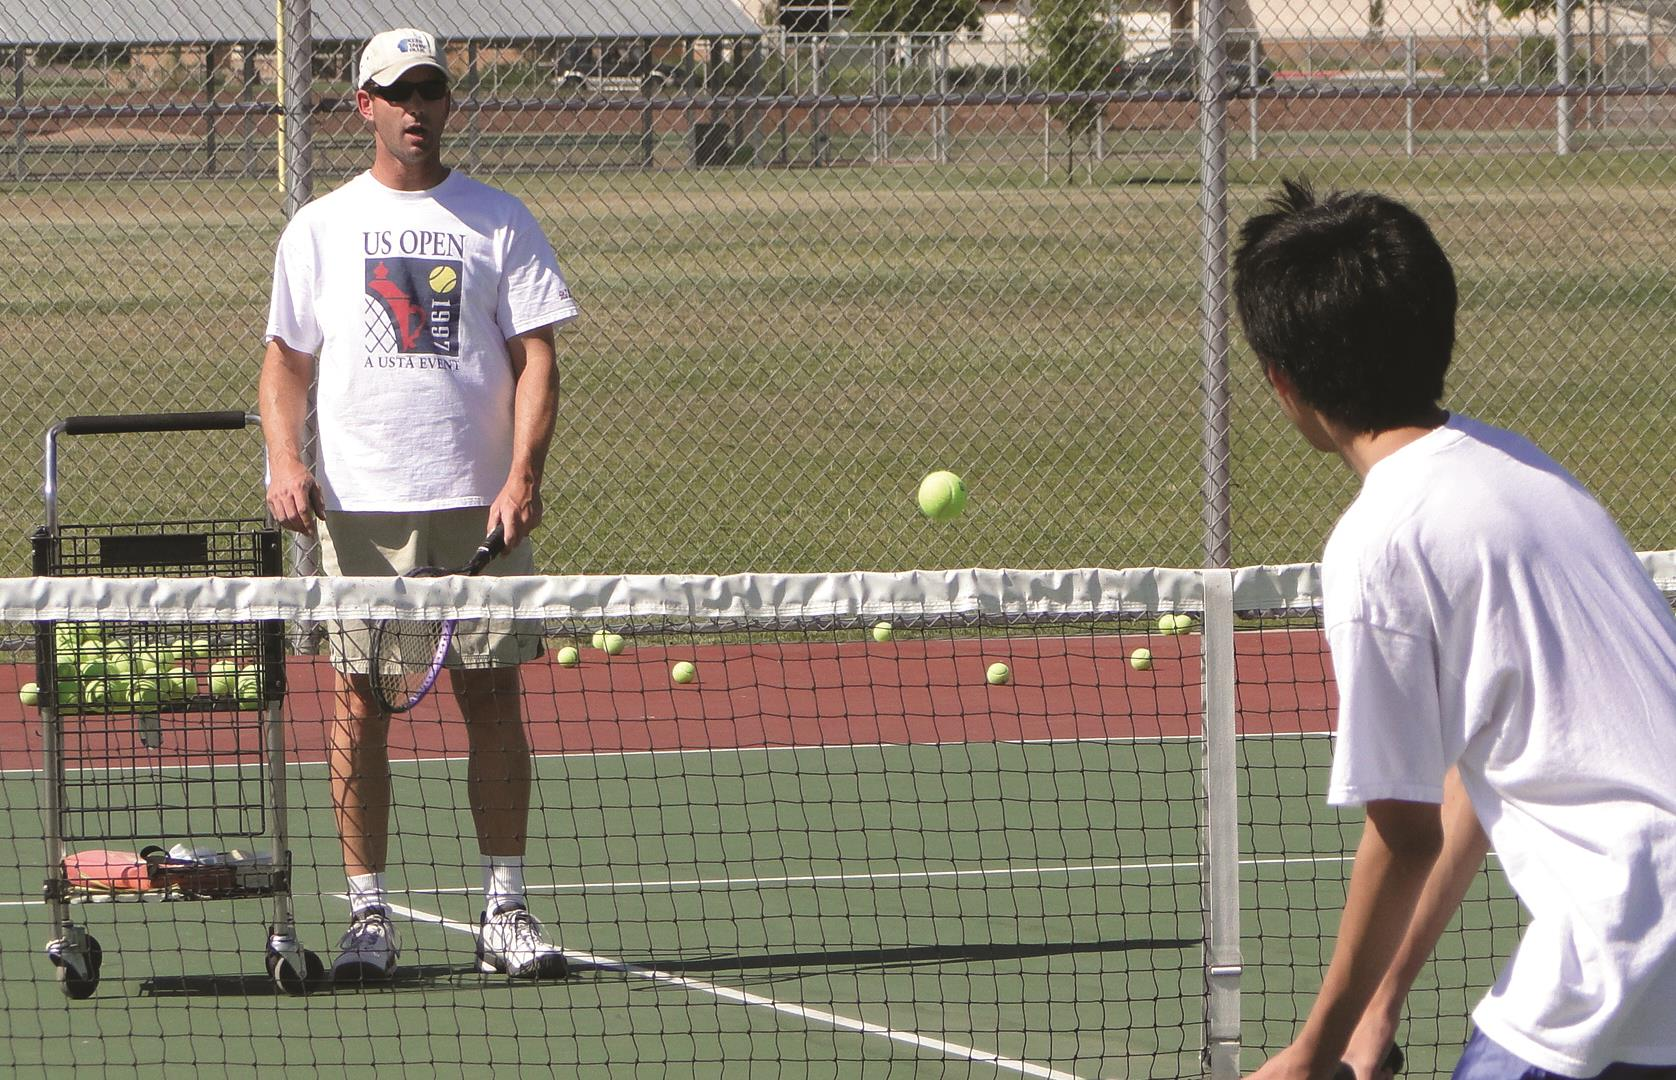 Recreation Center Tennis Coach teaching lesson